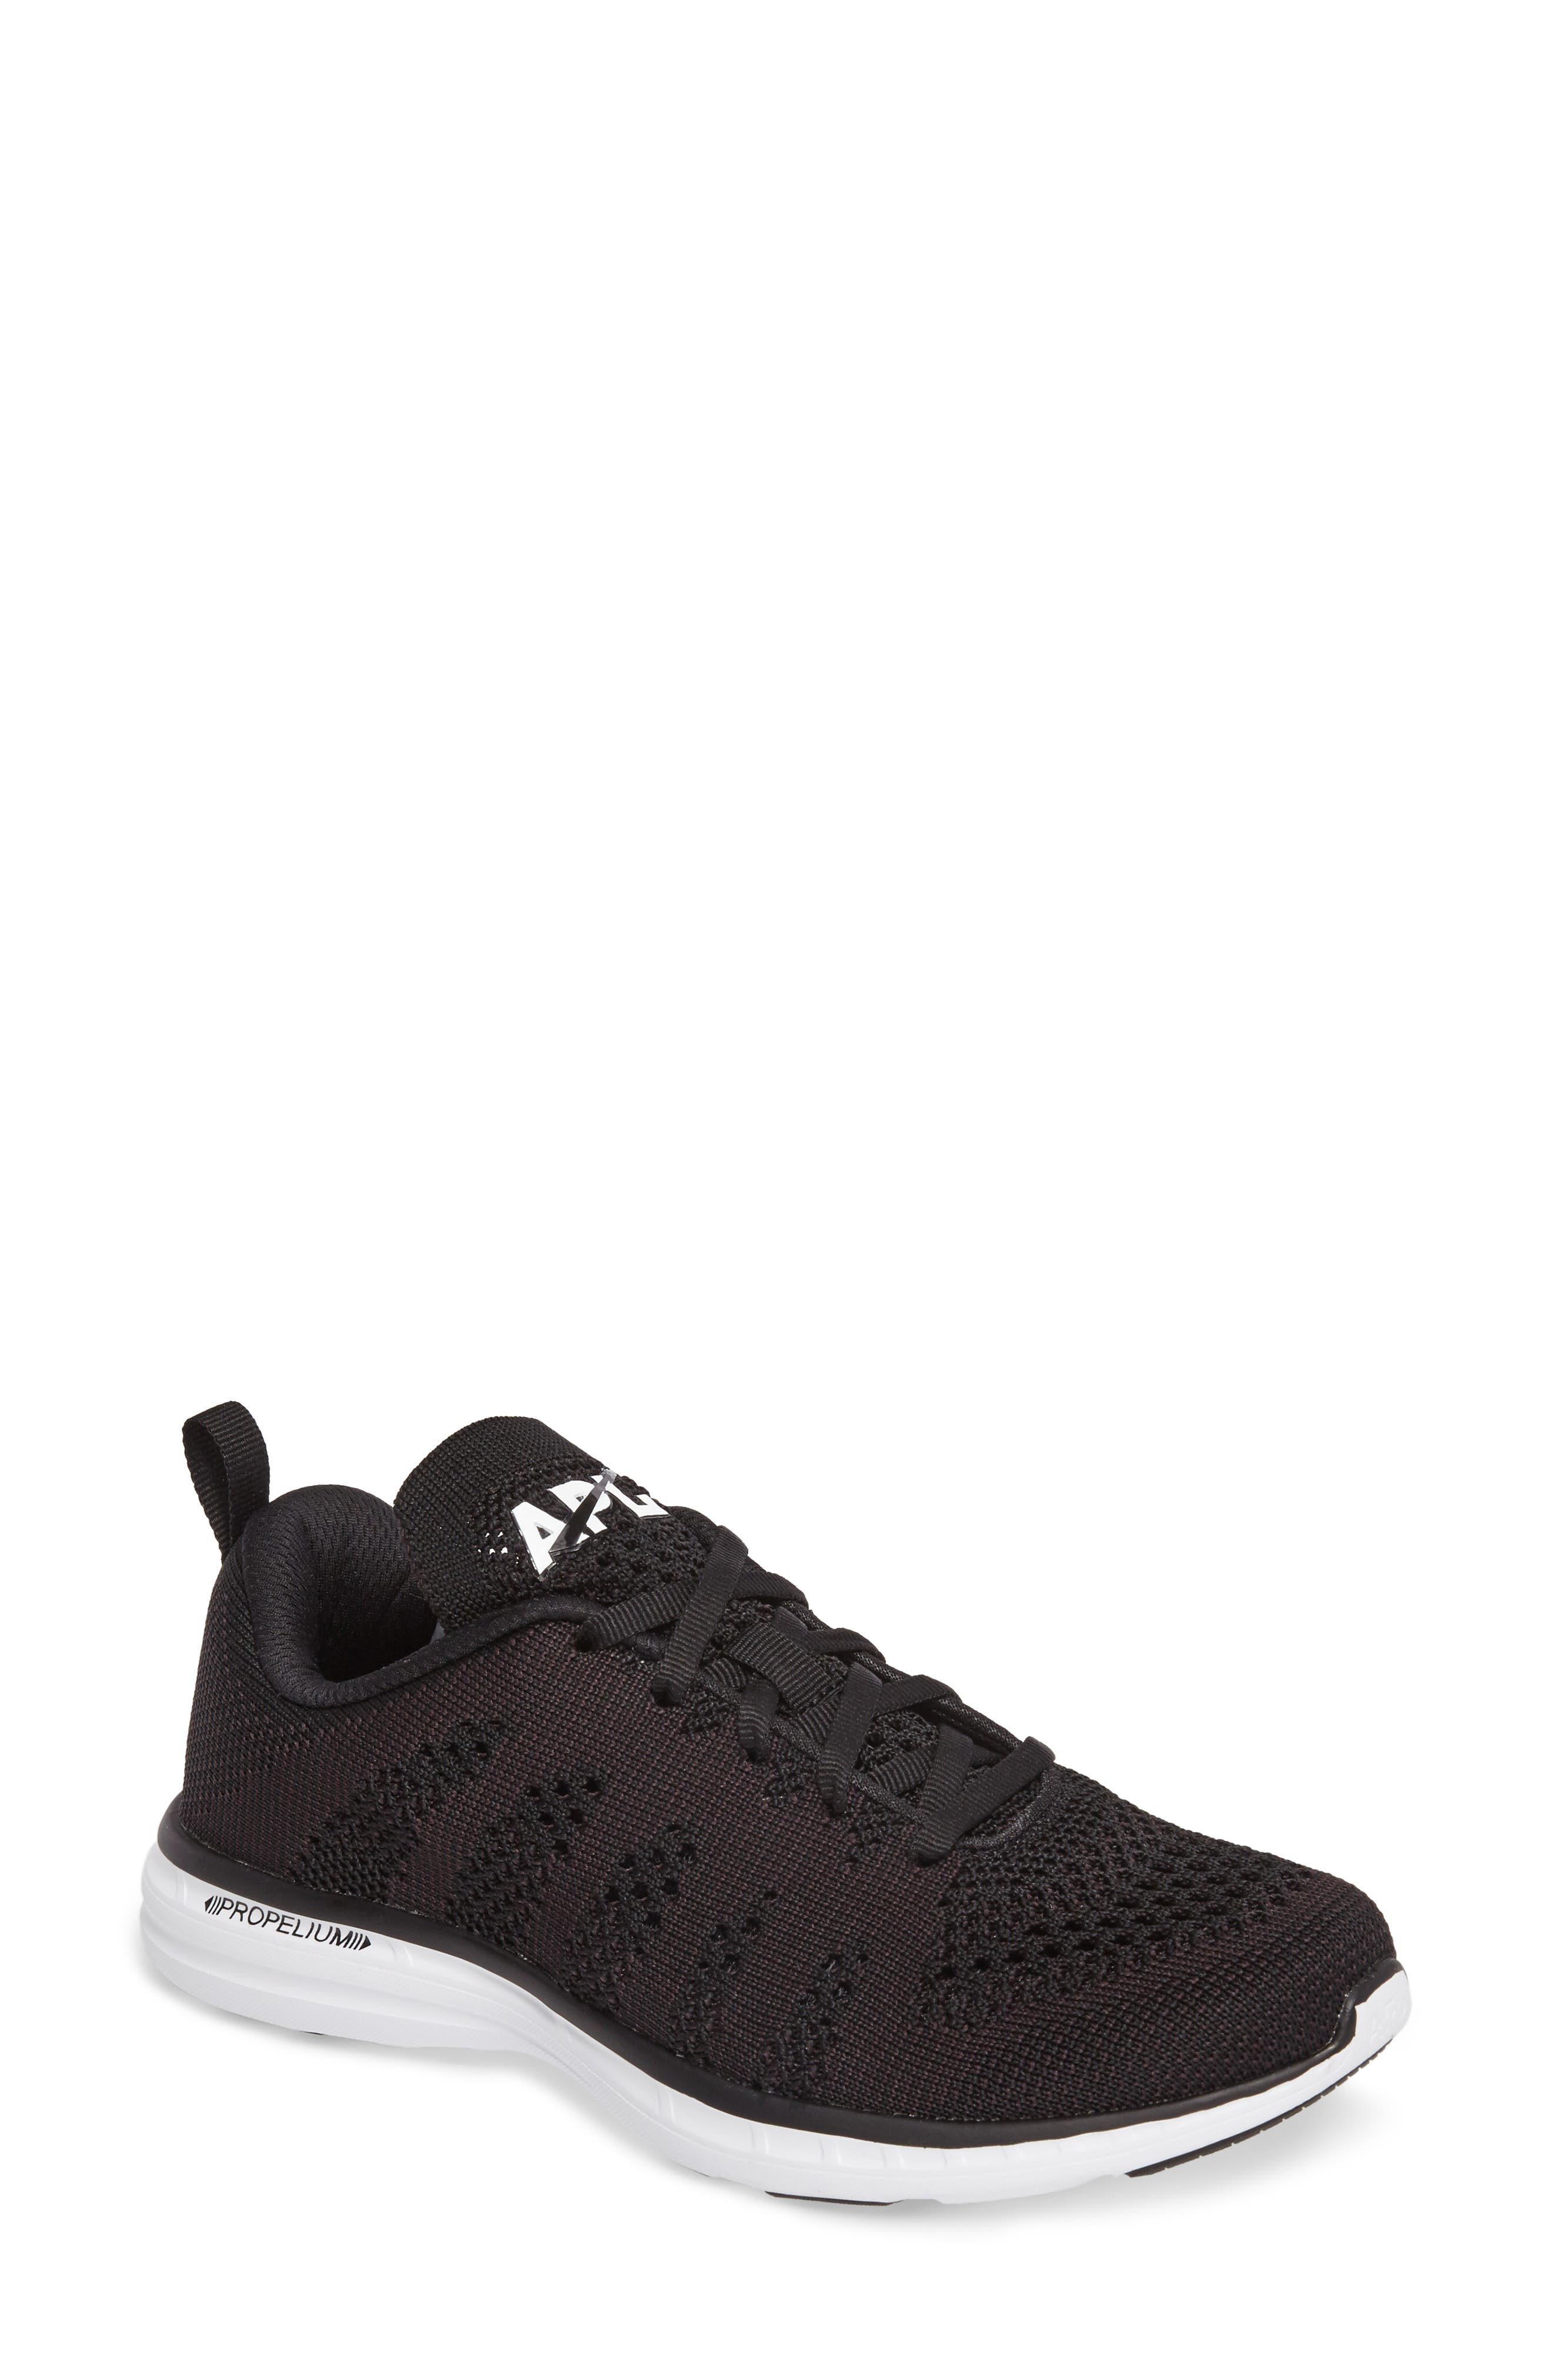 APL ATHLETIC PROPULSION LABS Athletic Propulsion Labs Women'S Techloom Pro Knit Low-Top Sneakers in Black